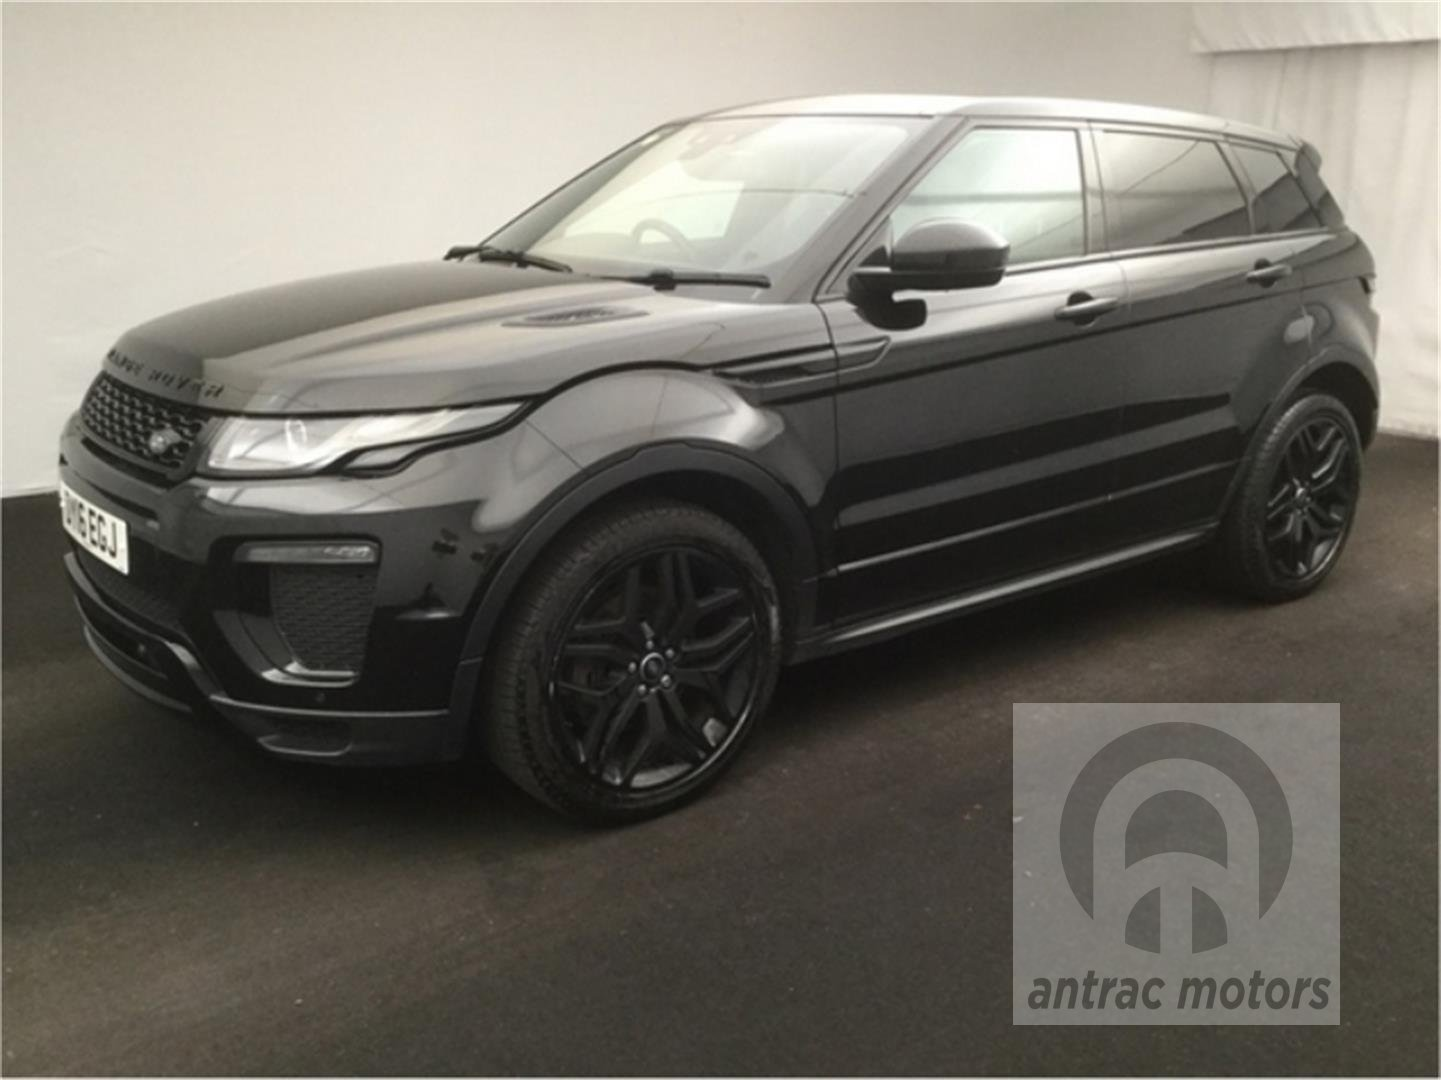 2016 Land Rover Range Rover Evoque 2.0Td4 ( 180bhp ) 4X4 Aut For Sale (picture 1 of 6)